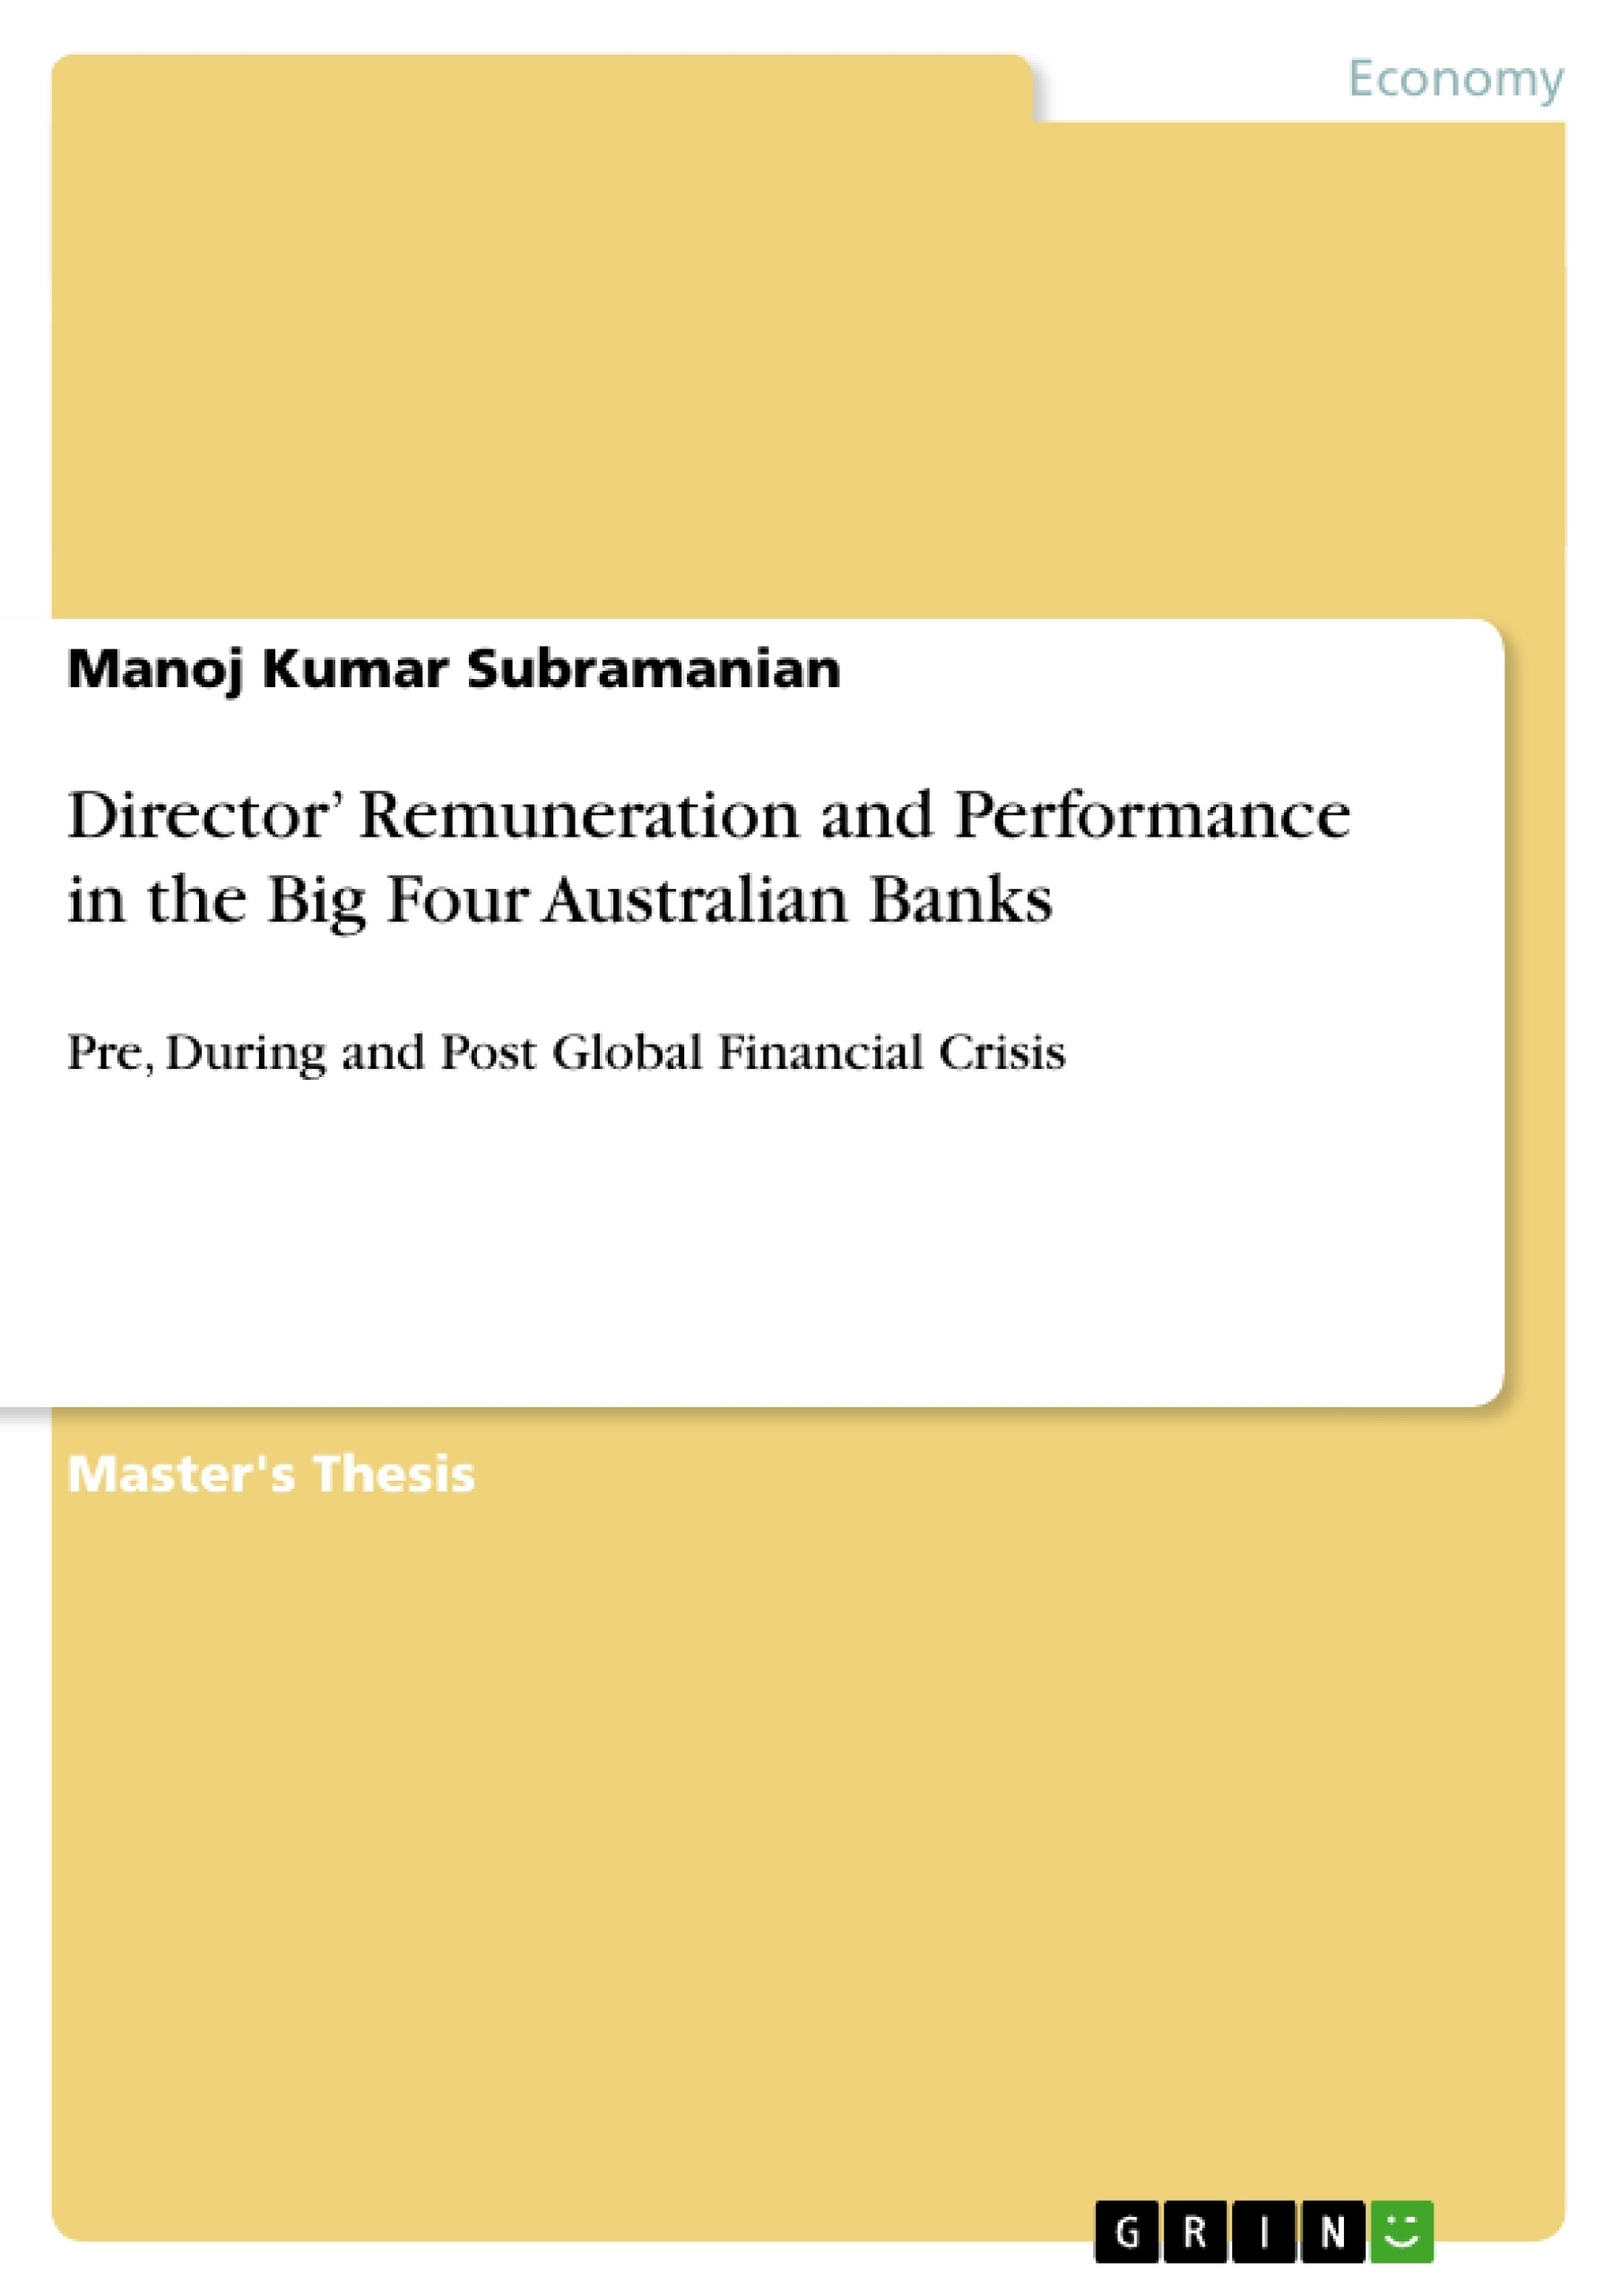 Title: Director' Remuneration and Performance in the Big Four Australian Banks